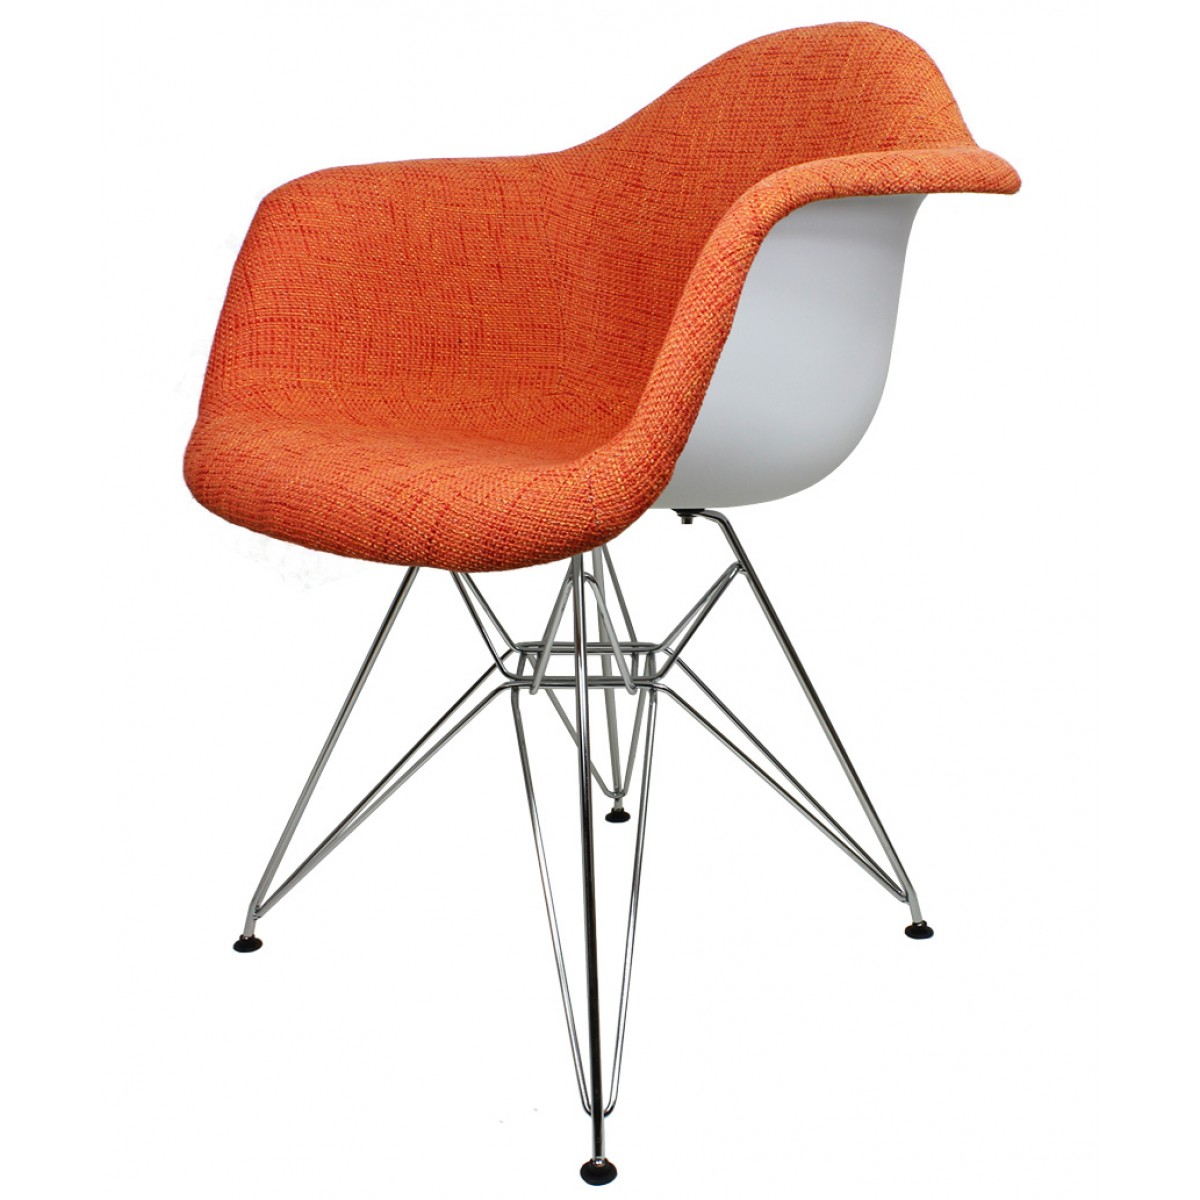 Modern Orange Chair Orange Woolen Fabric Eames Style Accent Arm Chair